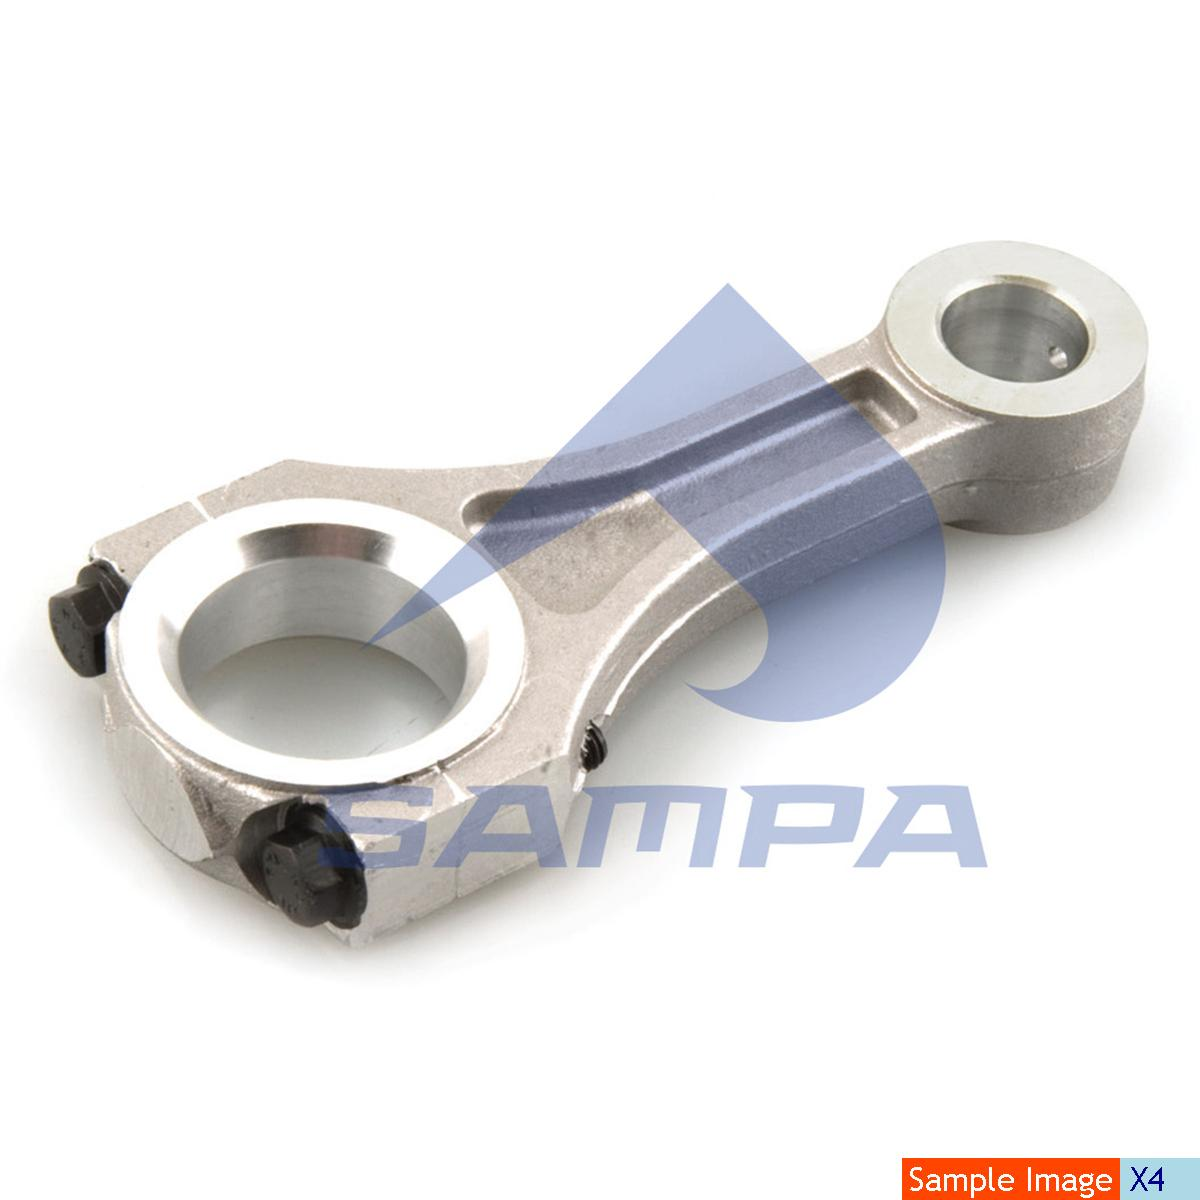 Connecting Rod, Piston, Man, Compressed Air System